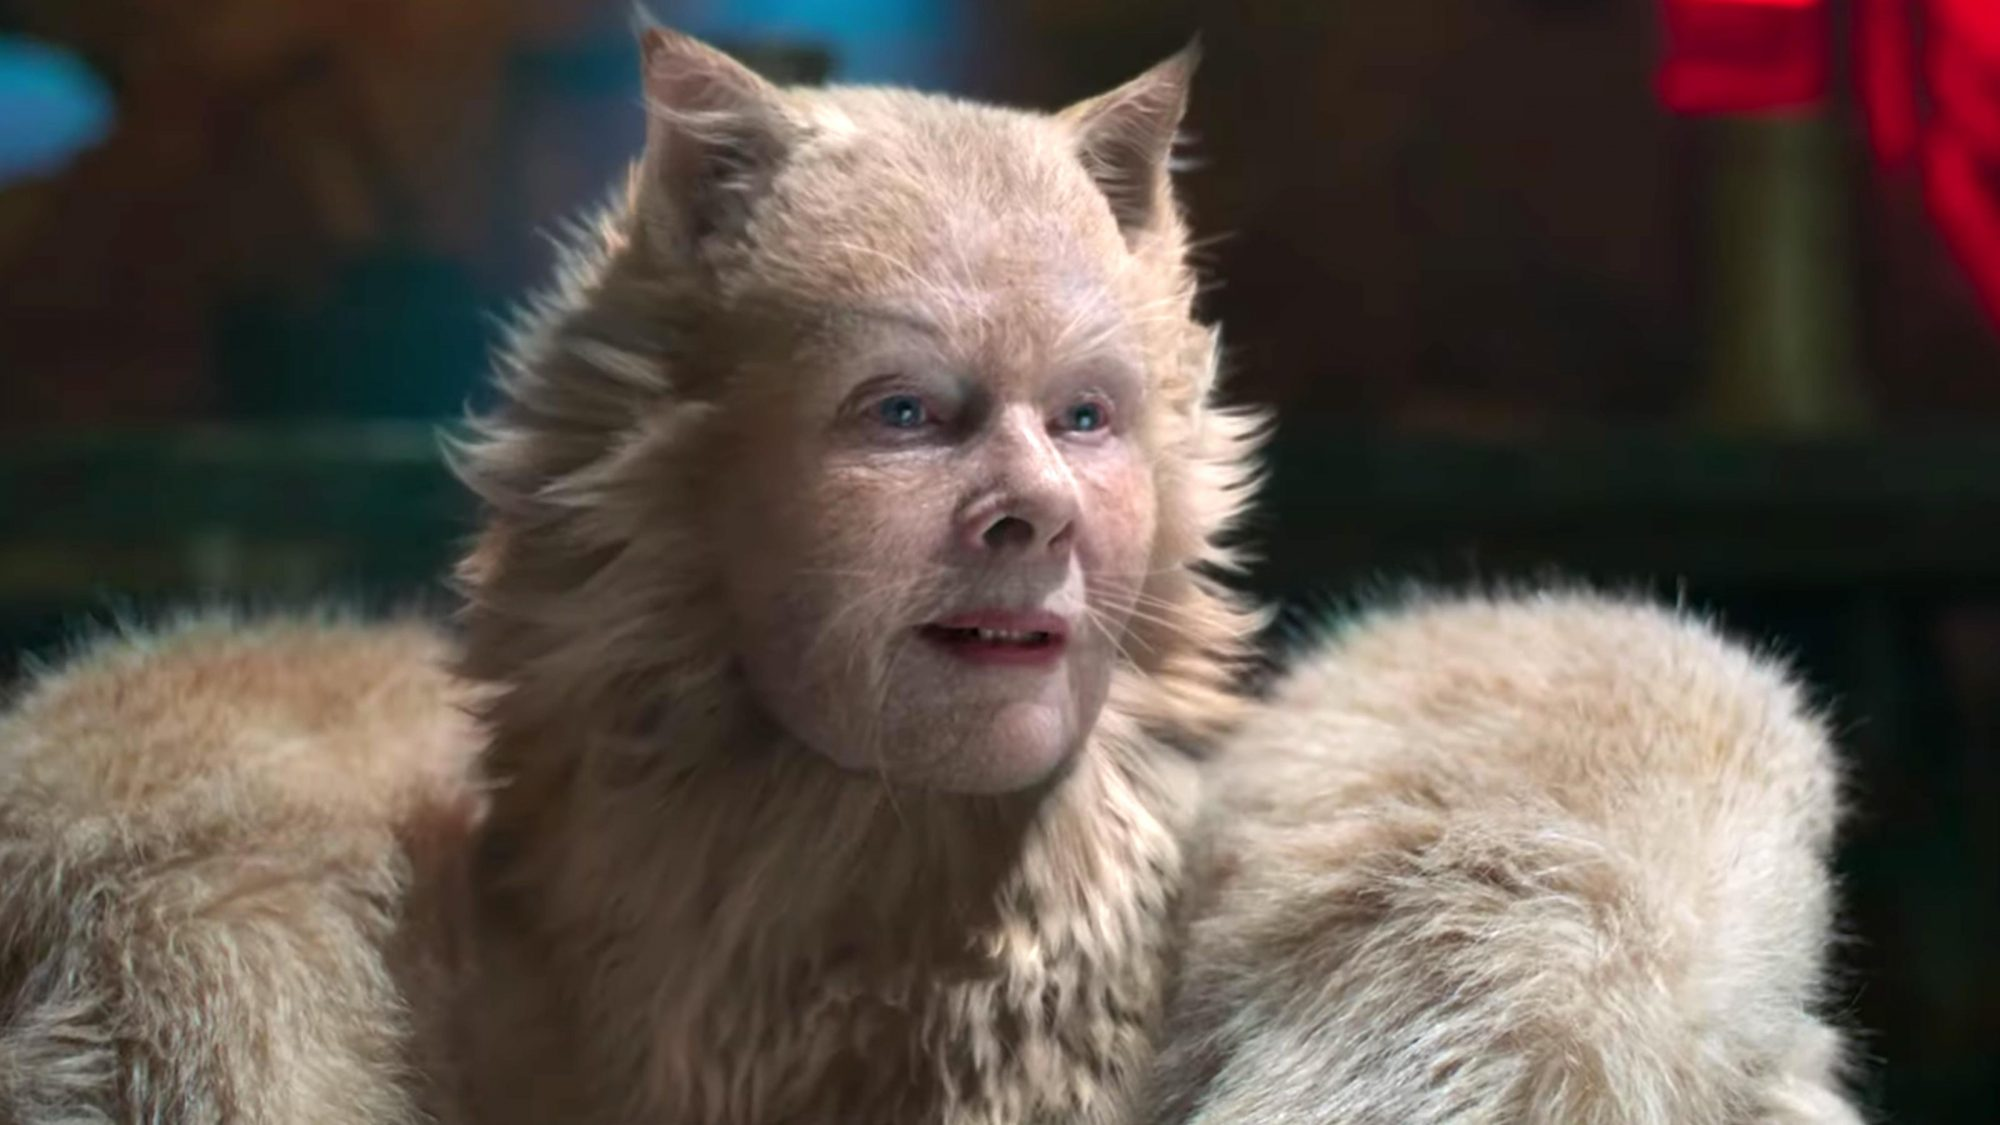 Cats (2019 movie) | EW.com